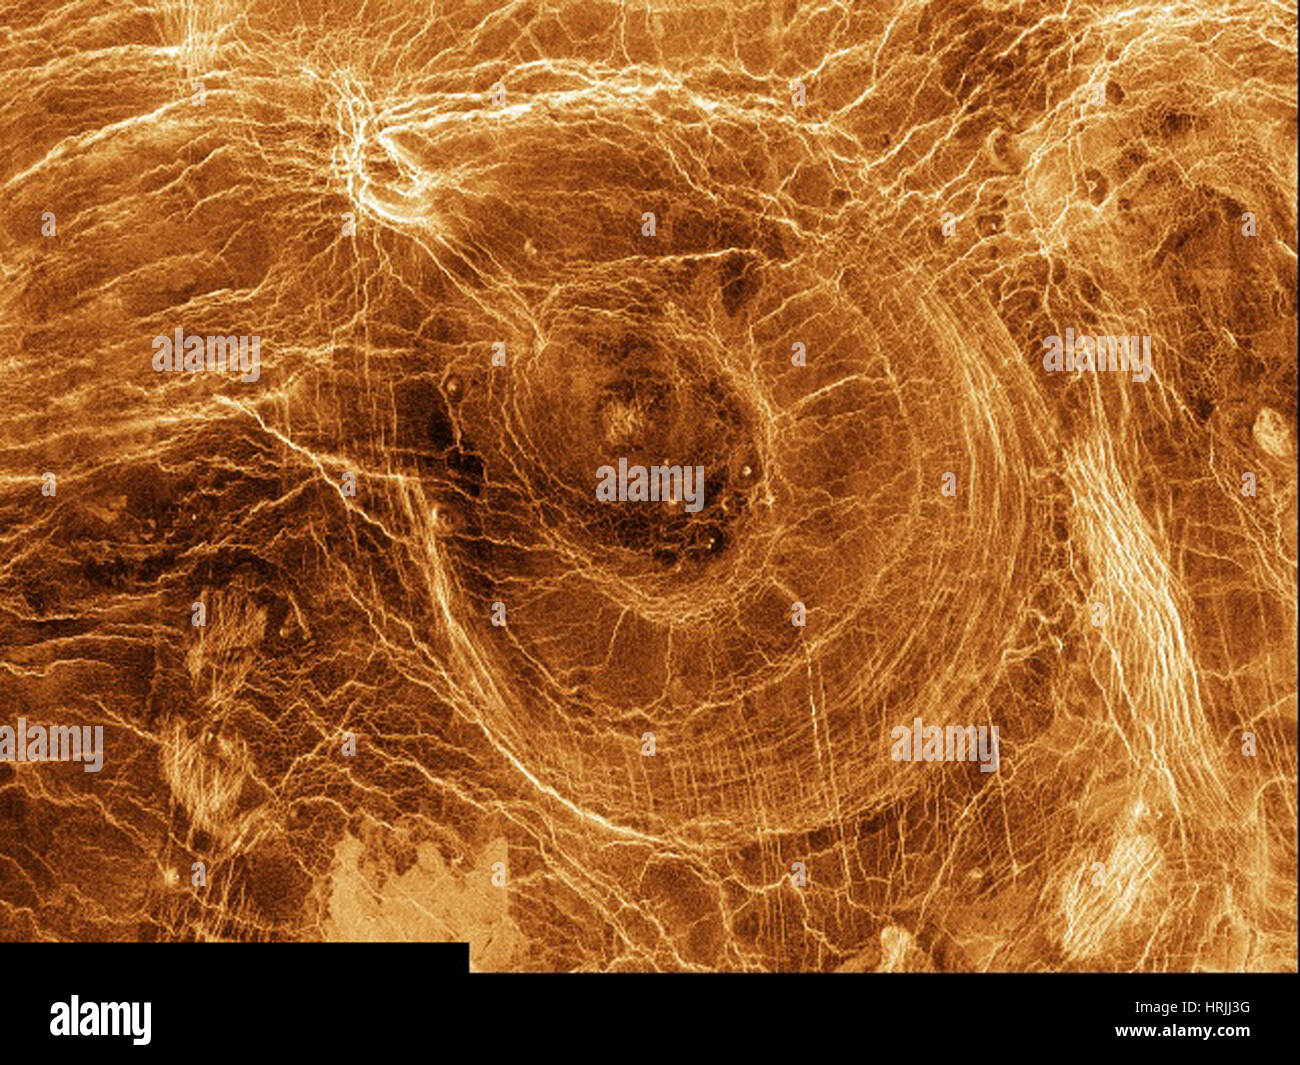 Venus Radar Mapper Stock Photos & Venus Radar Mapper Stock